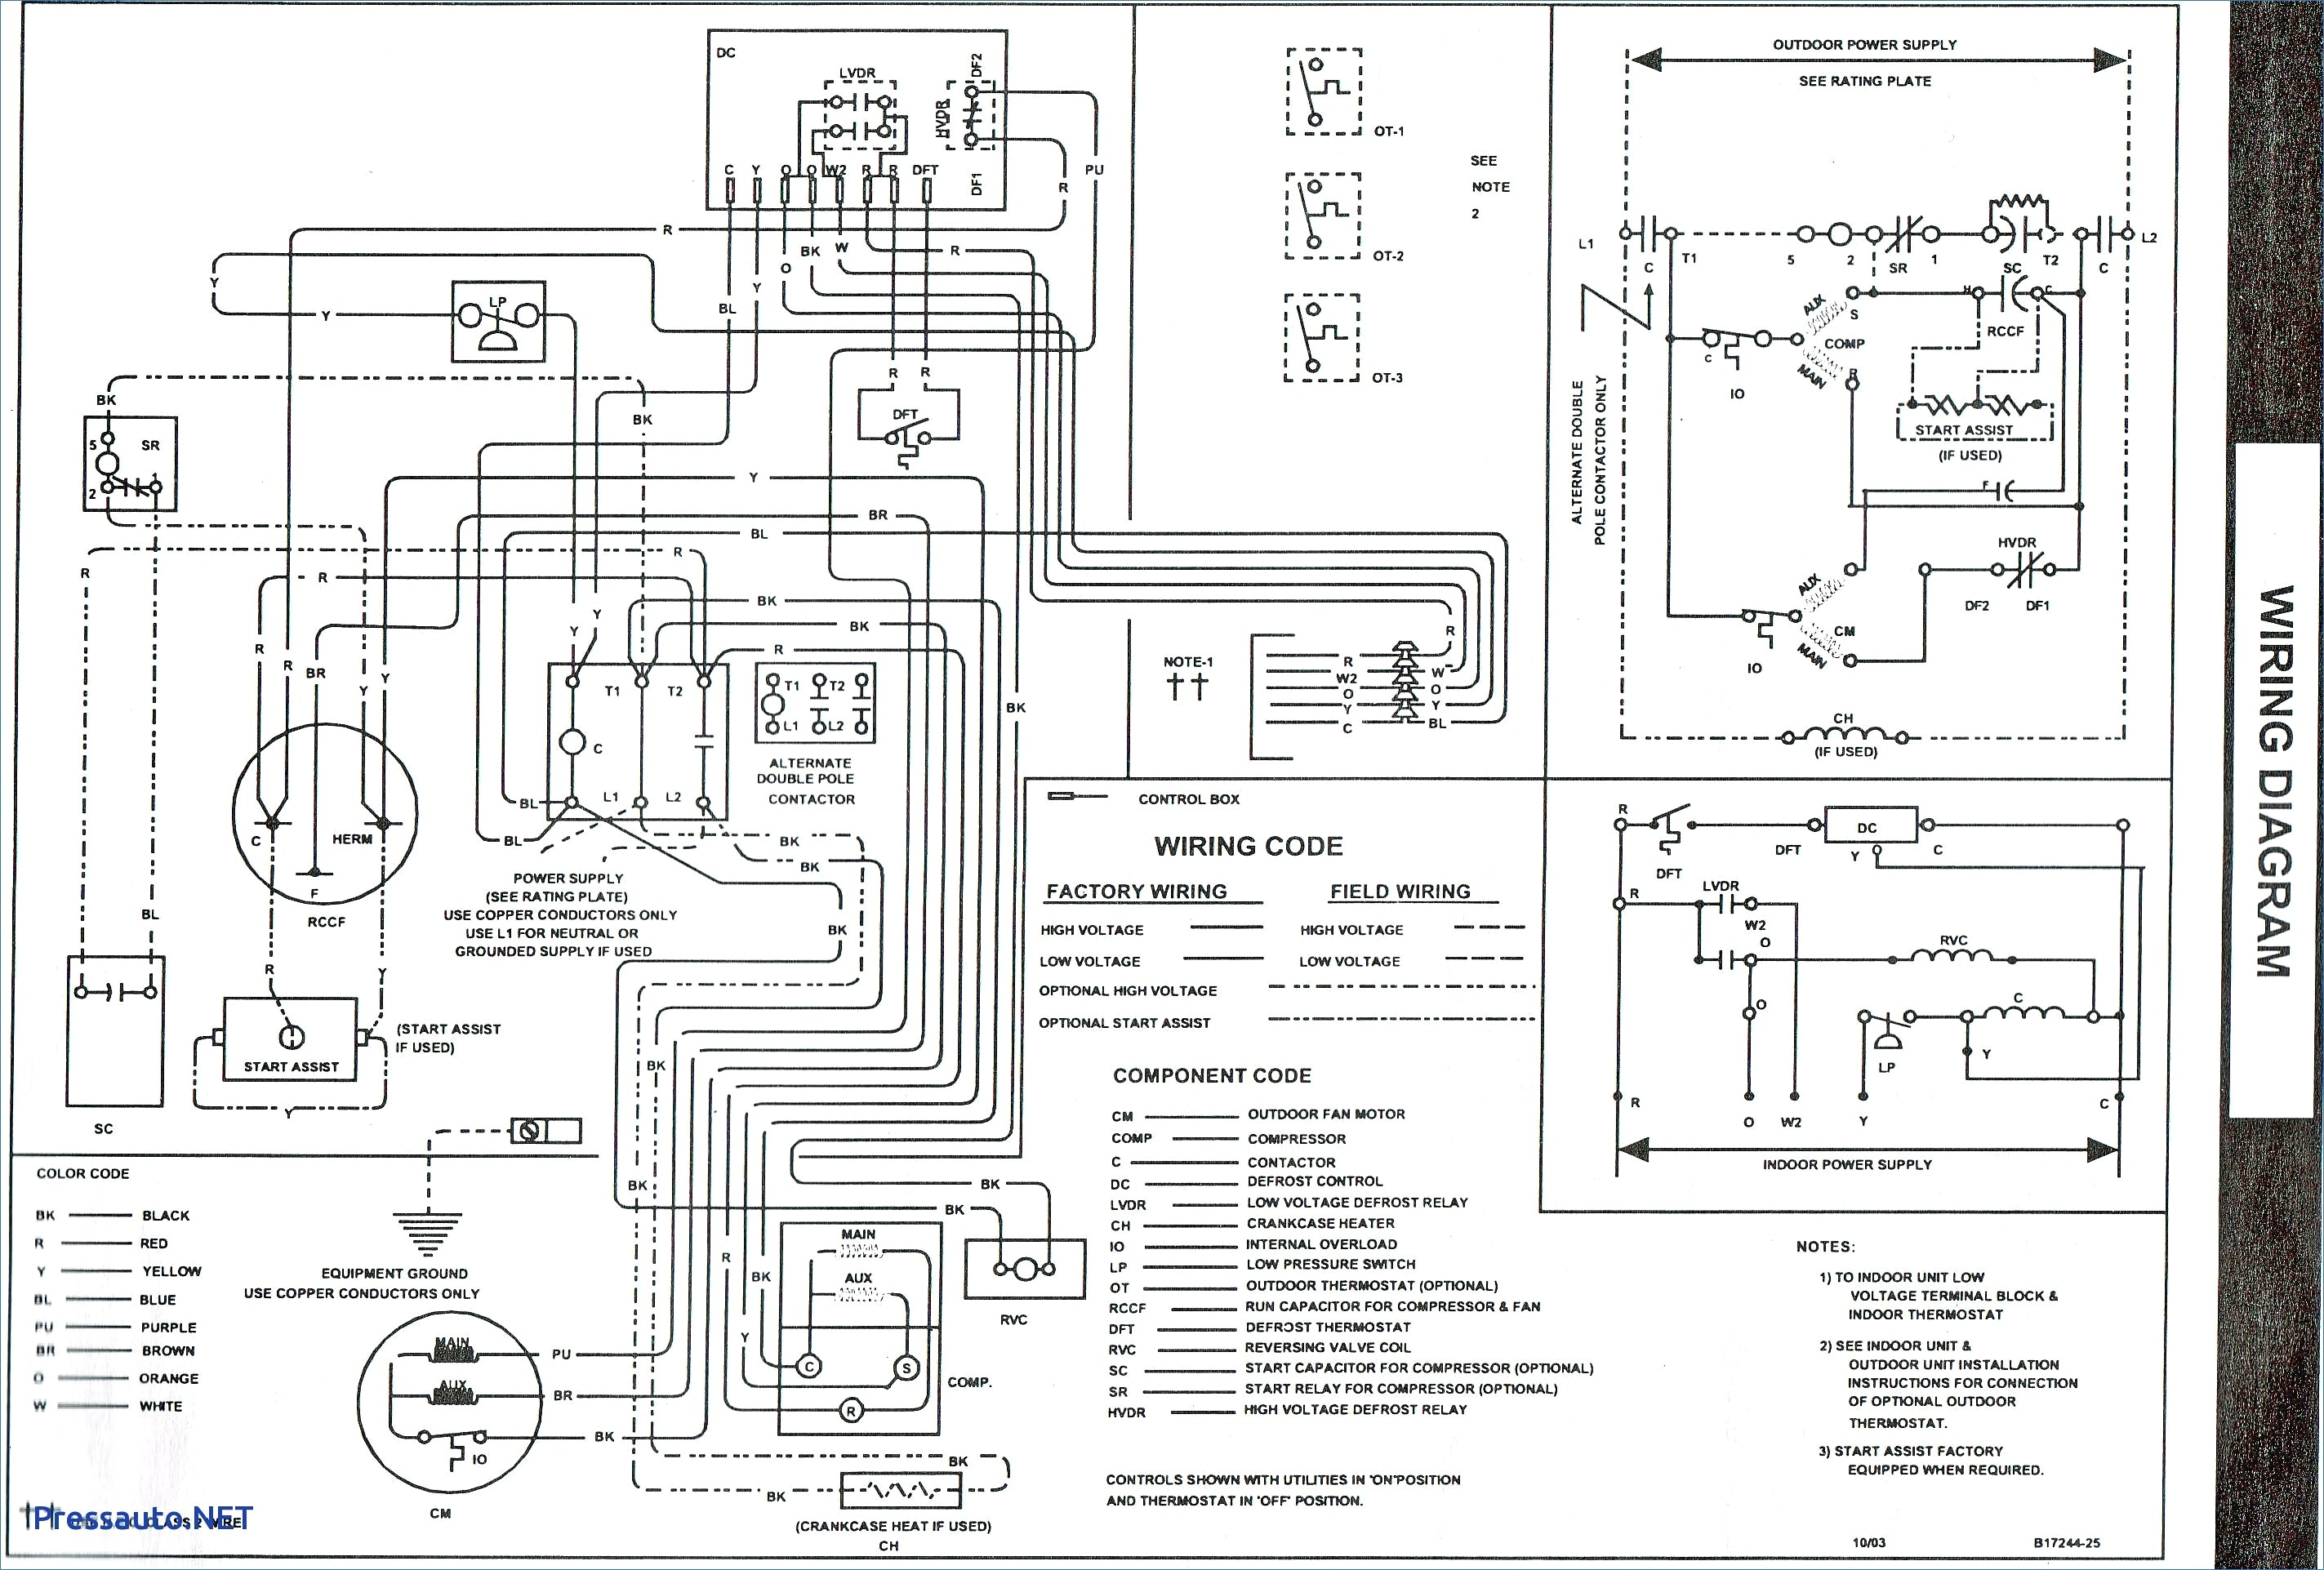 goodman hvac wiring diagrams